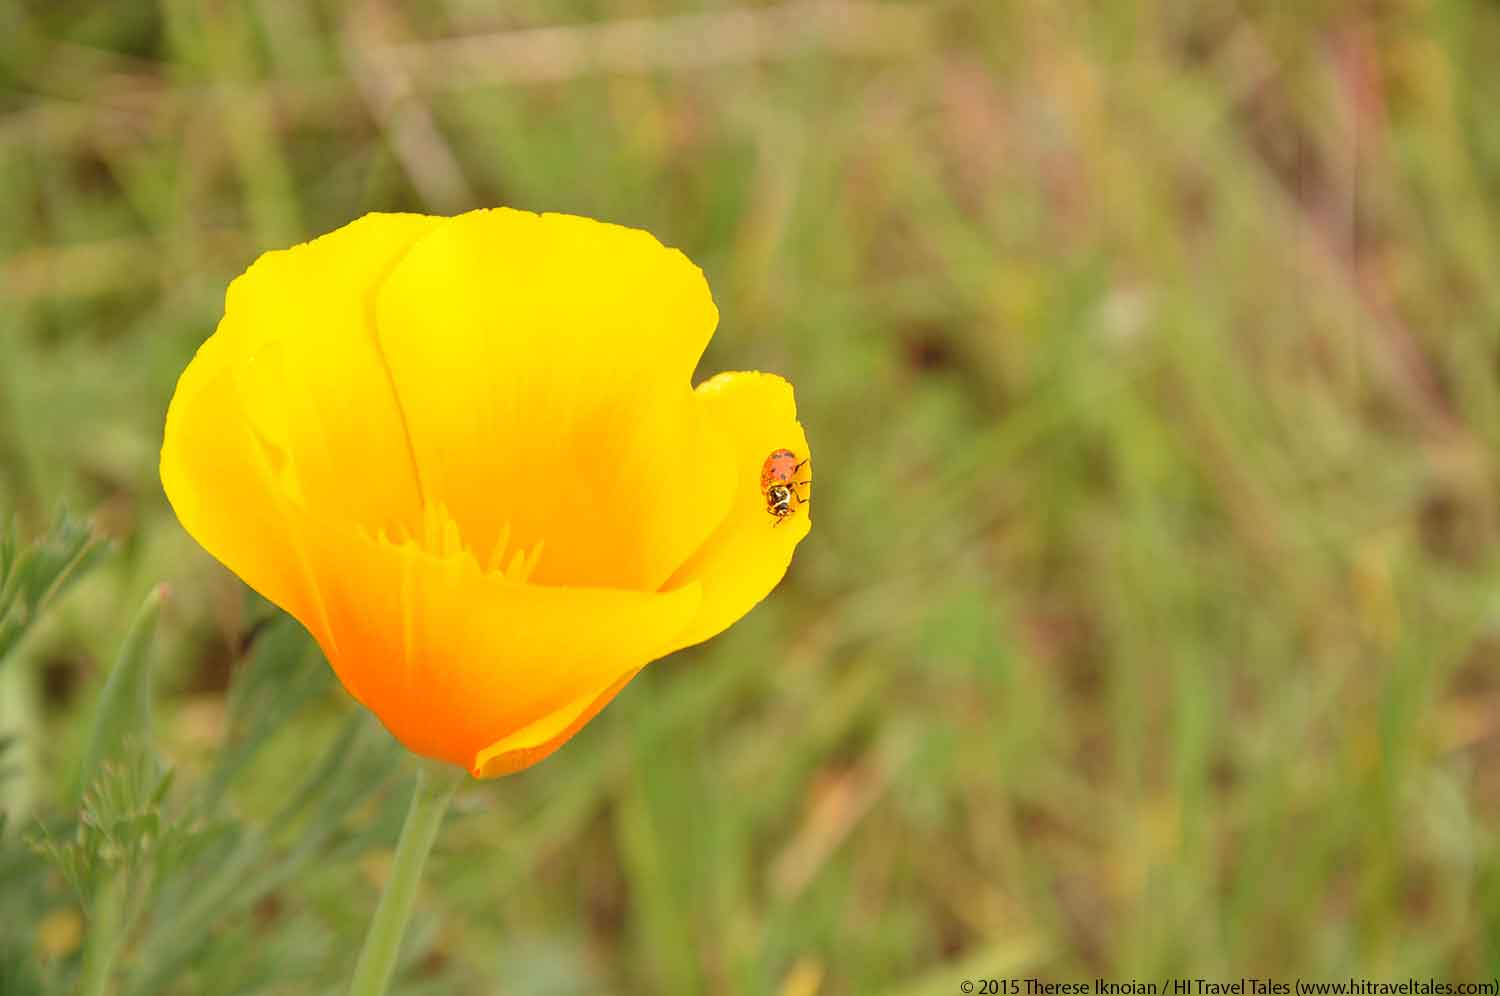 Sierra Foothills Wildflowers Hike finds a ladybug in a poppy